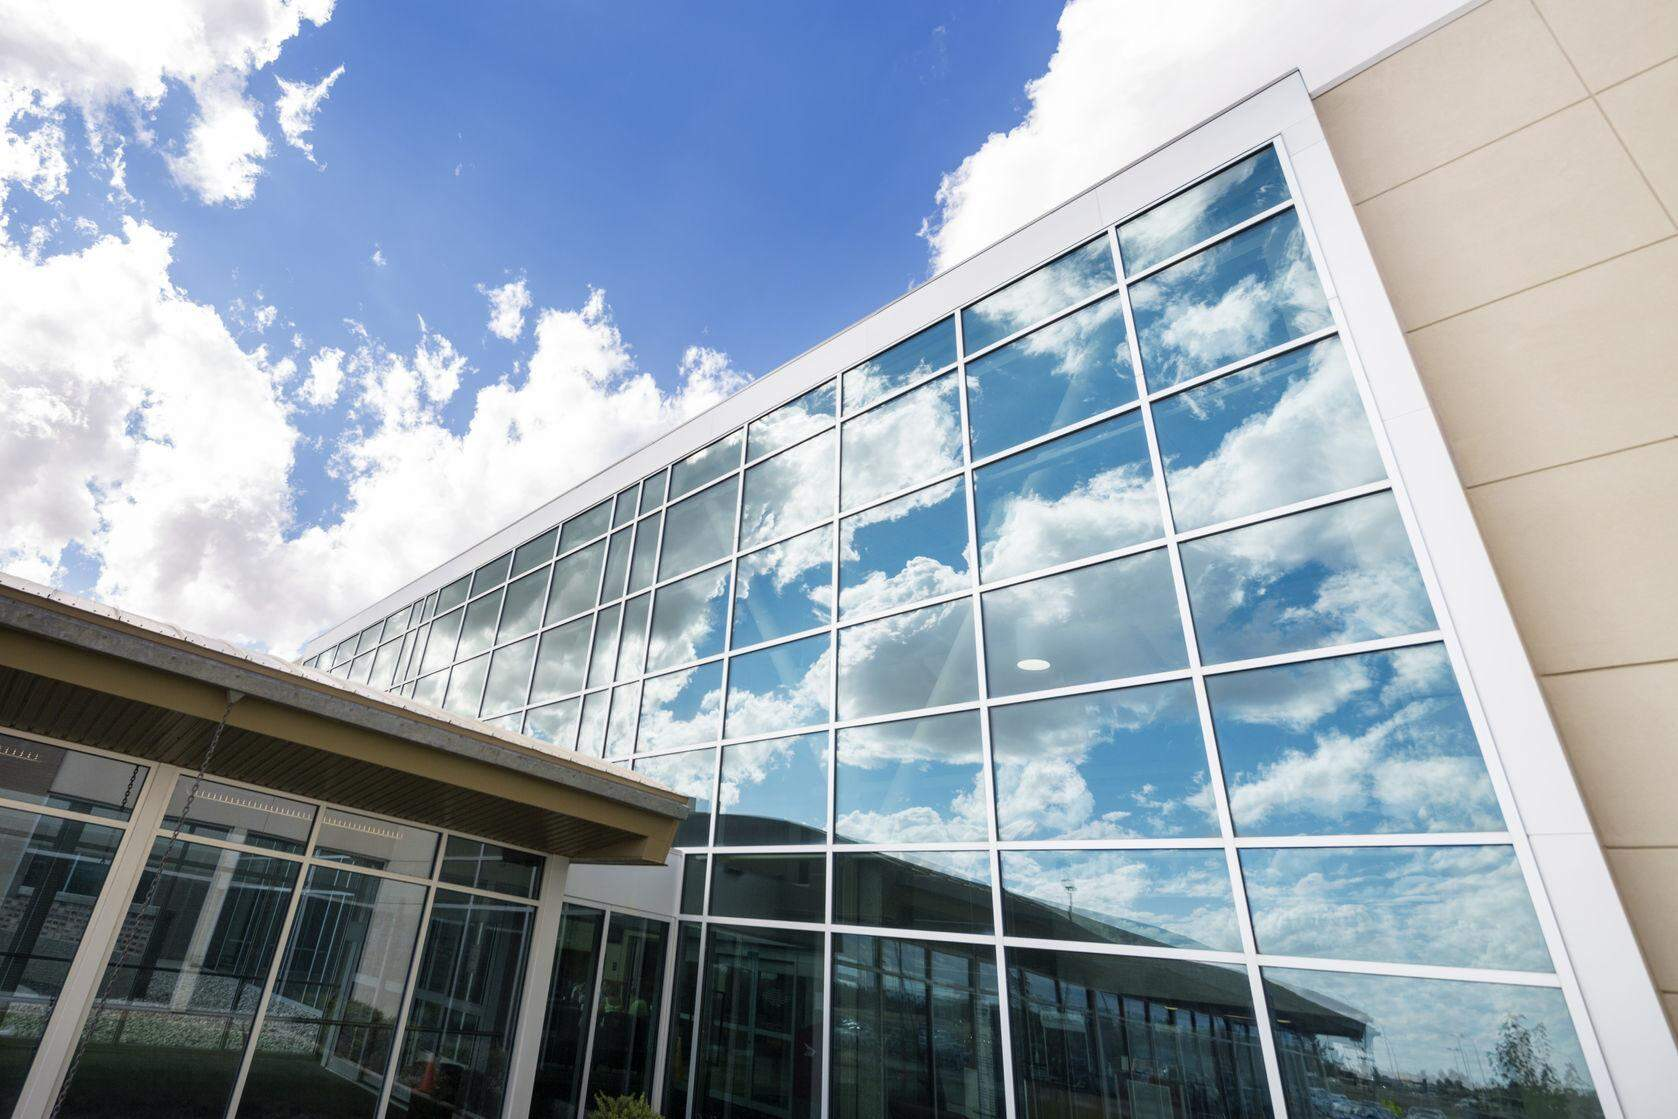 Low angle view of modern hospital building with reflection of clouds on glass windows